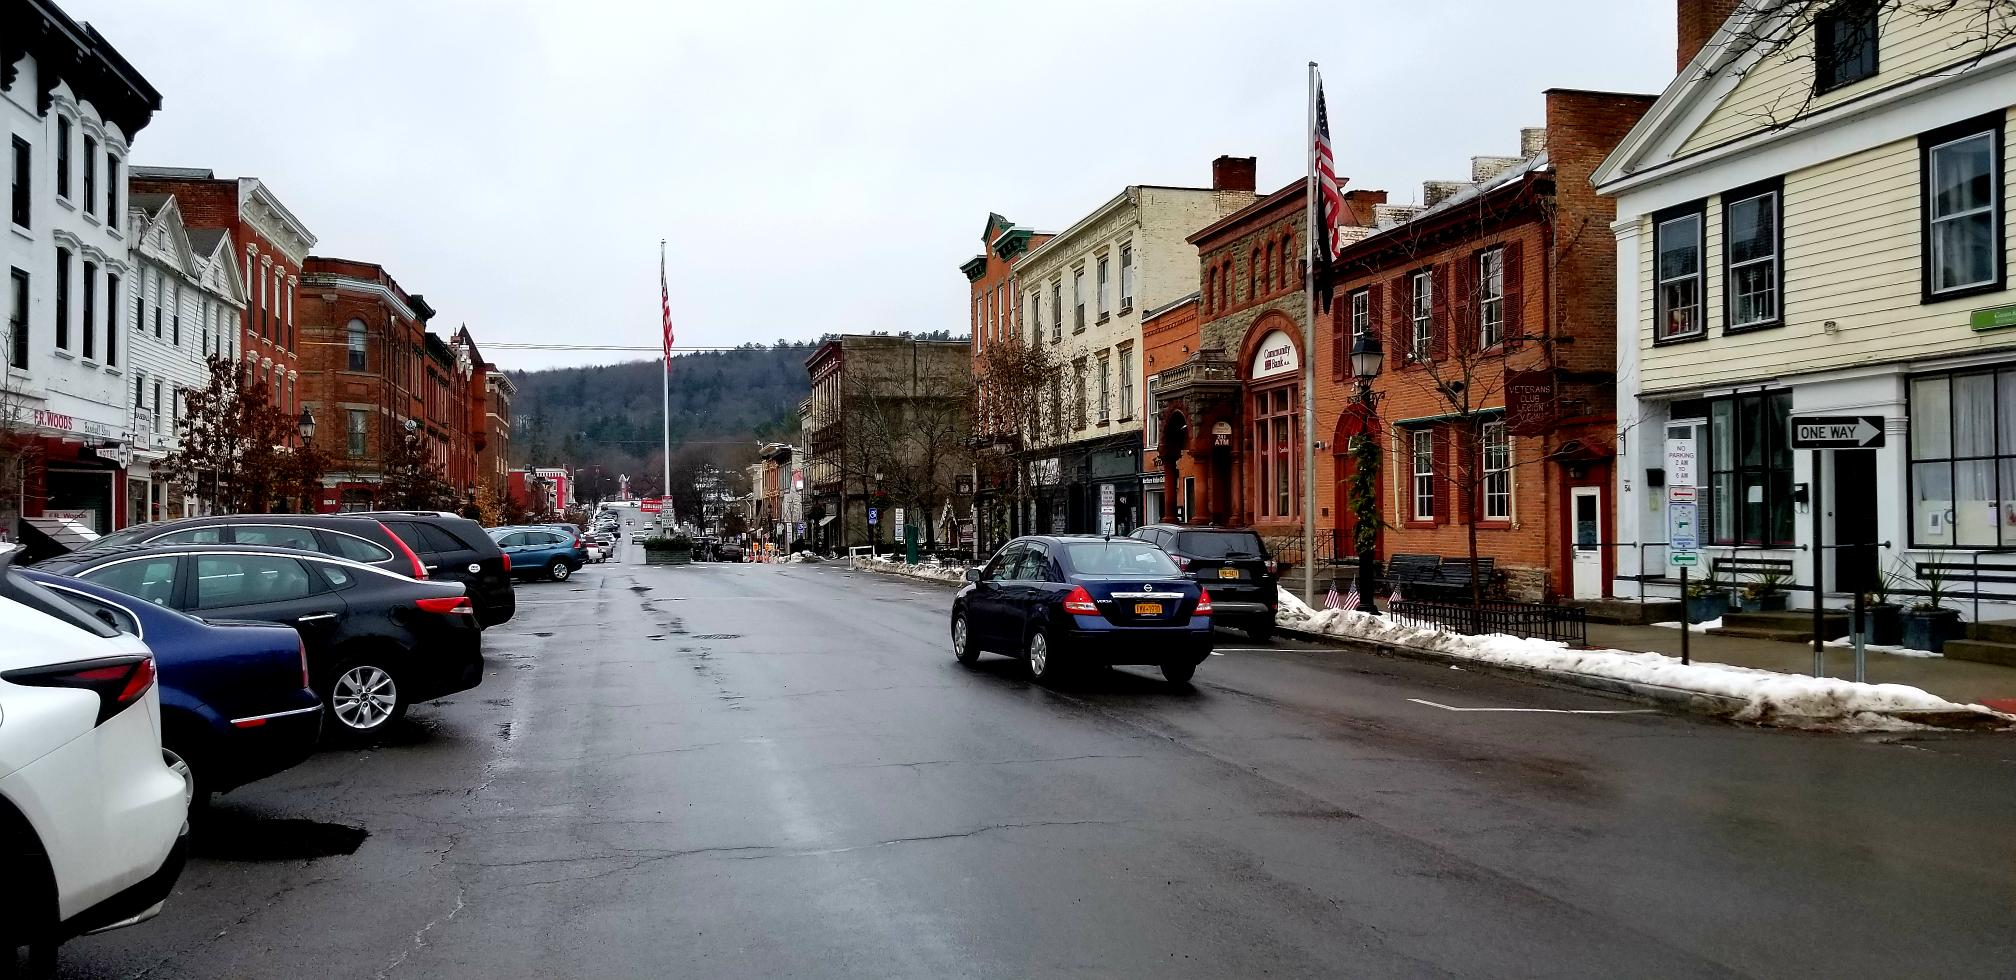 things to do in cooperstown ny winter